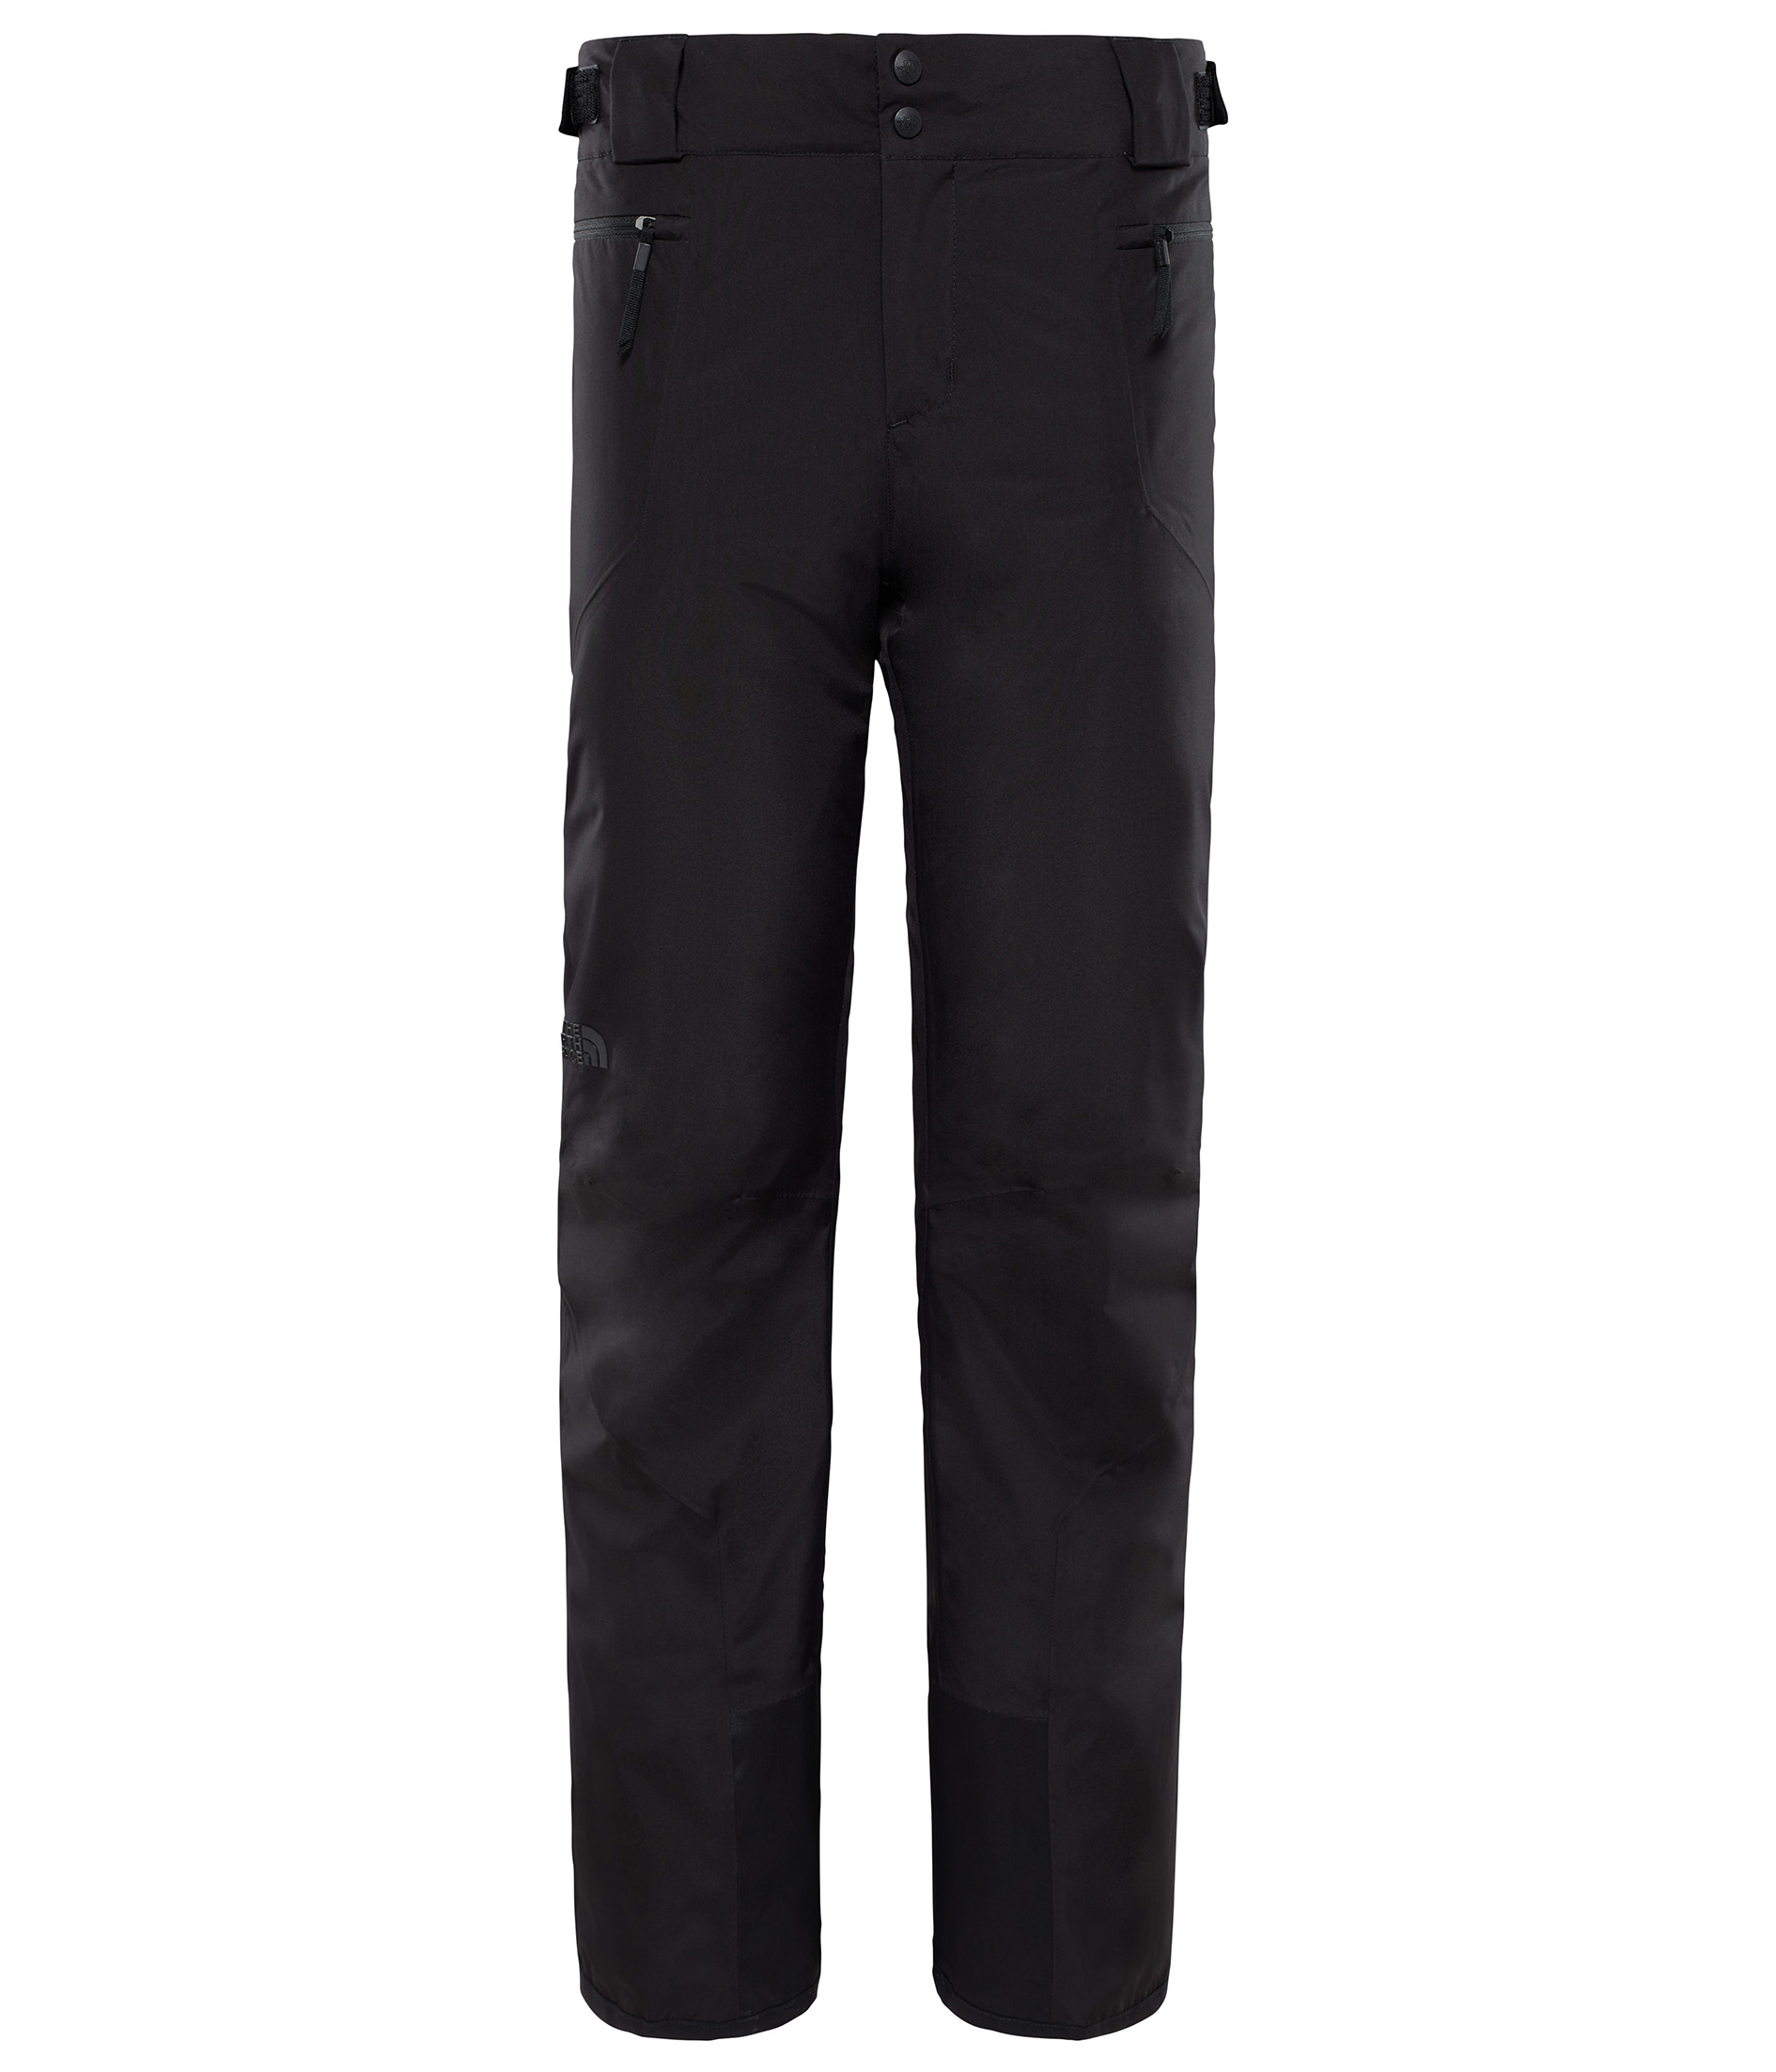 THE NORTH FACE W PRESENA PANT - EU ONLY, BLACK velikost: M